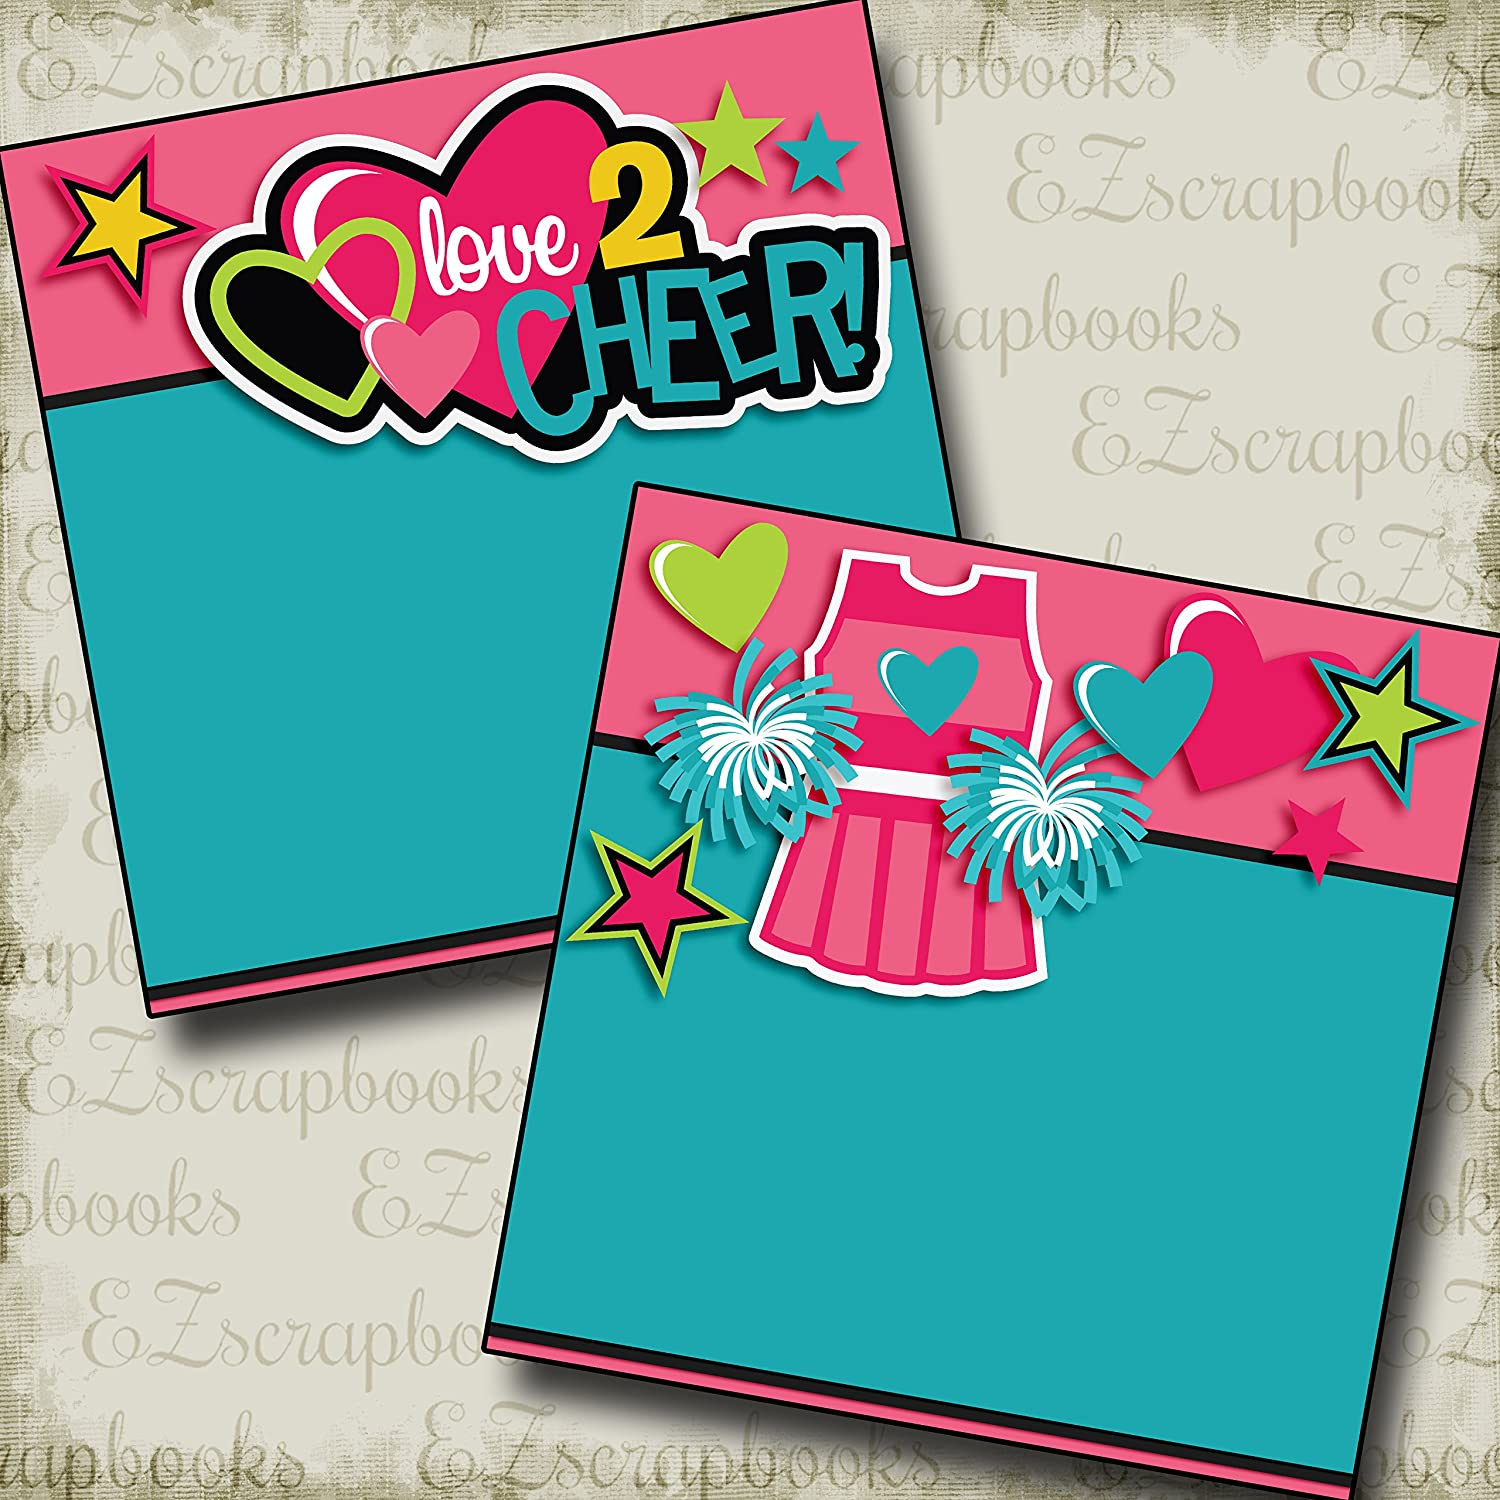 I LOVE CHEER Non-Photo-Mat EZ Layout 2561 Premade Scrapbook Pages